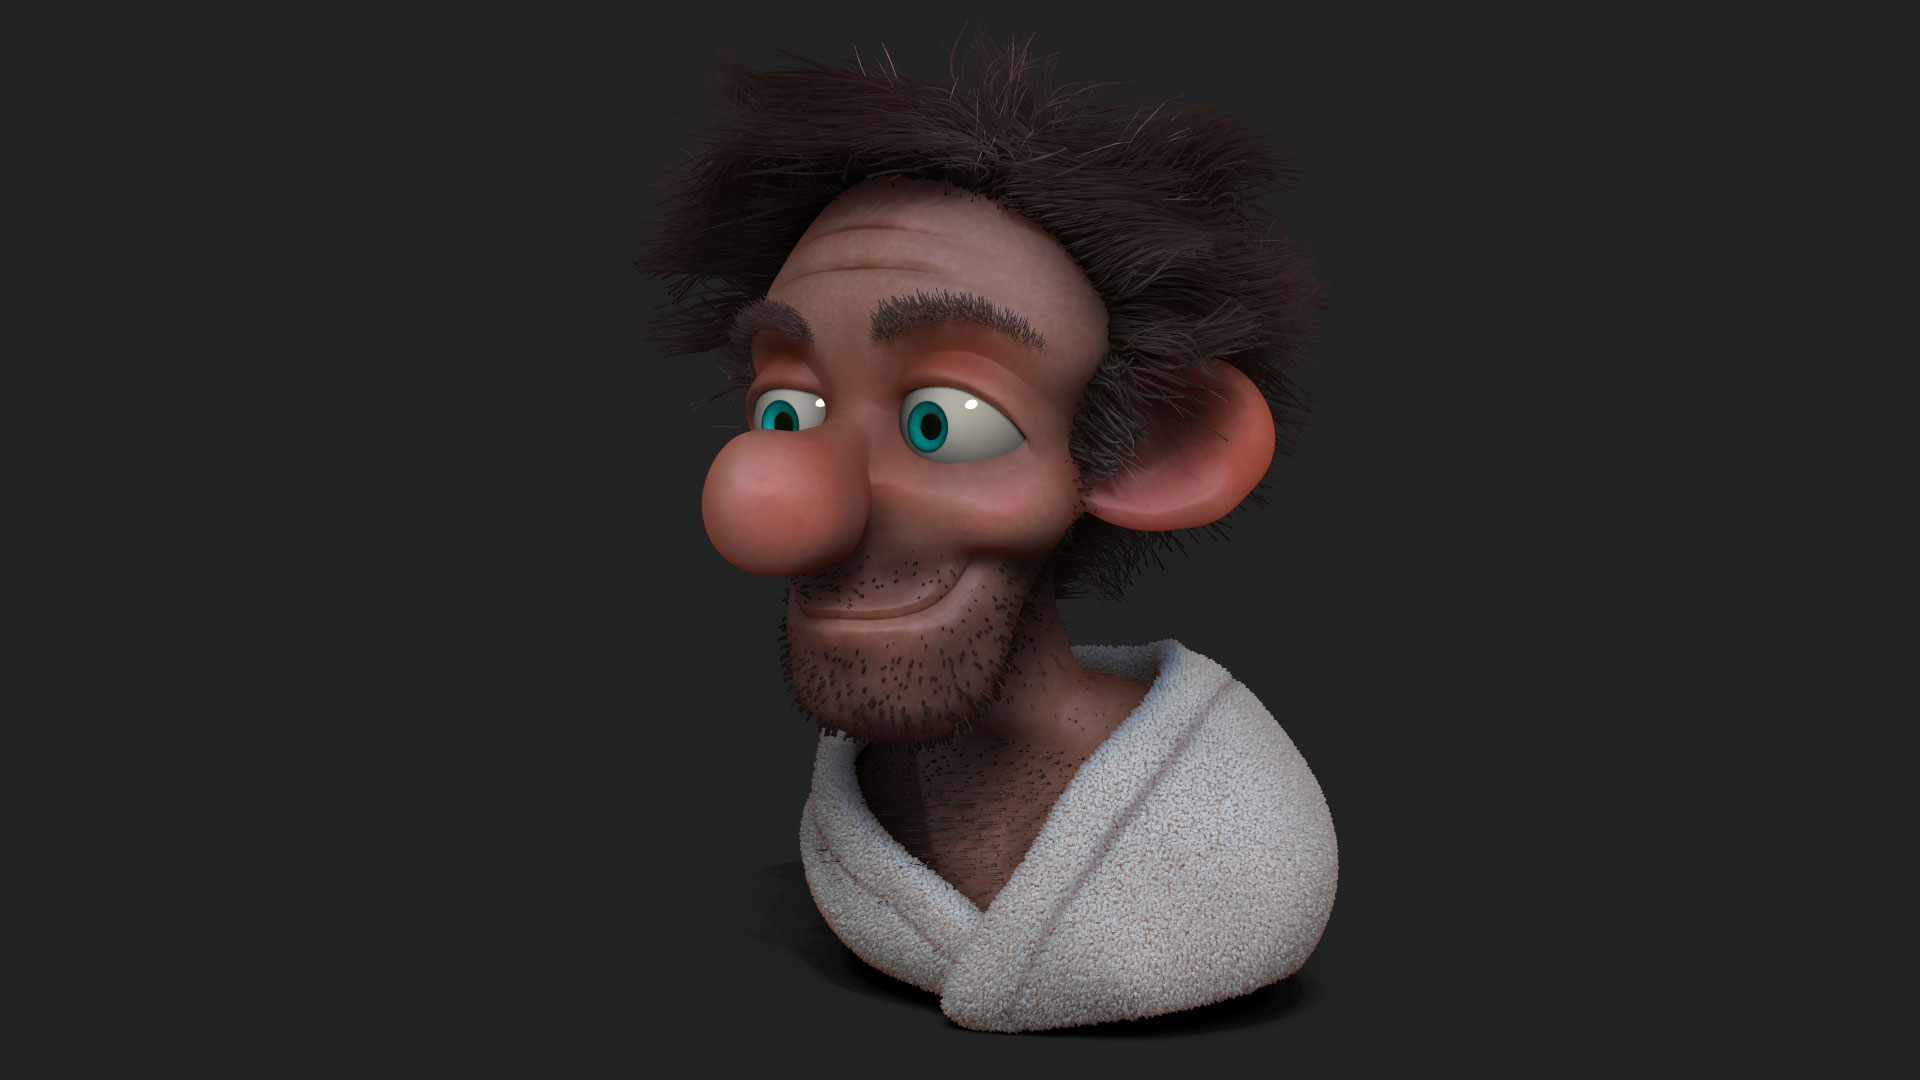 Scruffy Looking Zbrush Fibermesh Sculpt